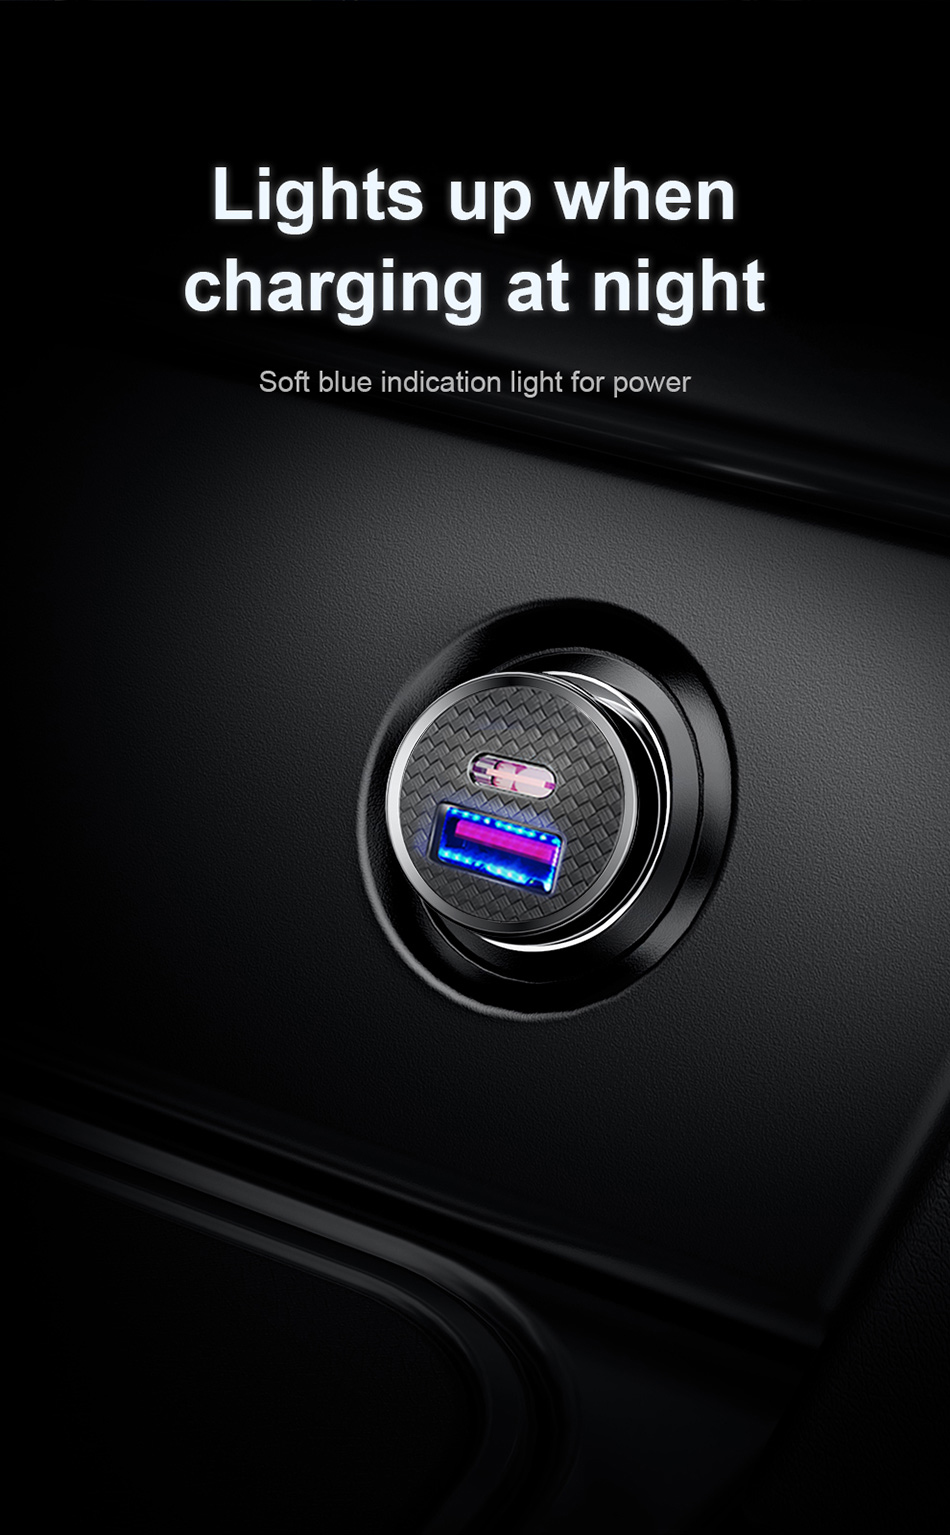 Baseus Quick Charge 4.0 3.0 USB Car Charger For Xiaomi mi 9 Huawei P30 Pro QC4.0 QC3.0 QC 5A Fast PD Car Charging Phone Charger-in Car Chargers from Cellphones & Telecommunications on Aliexpress.com | Alibaba Group 9